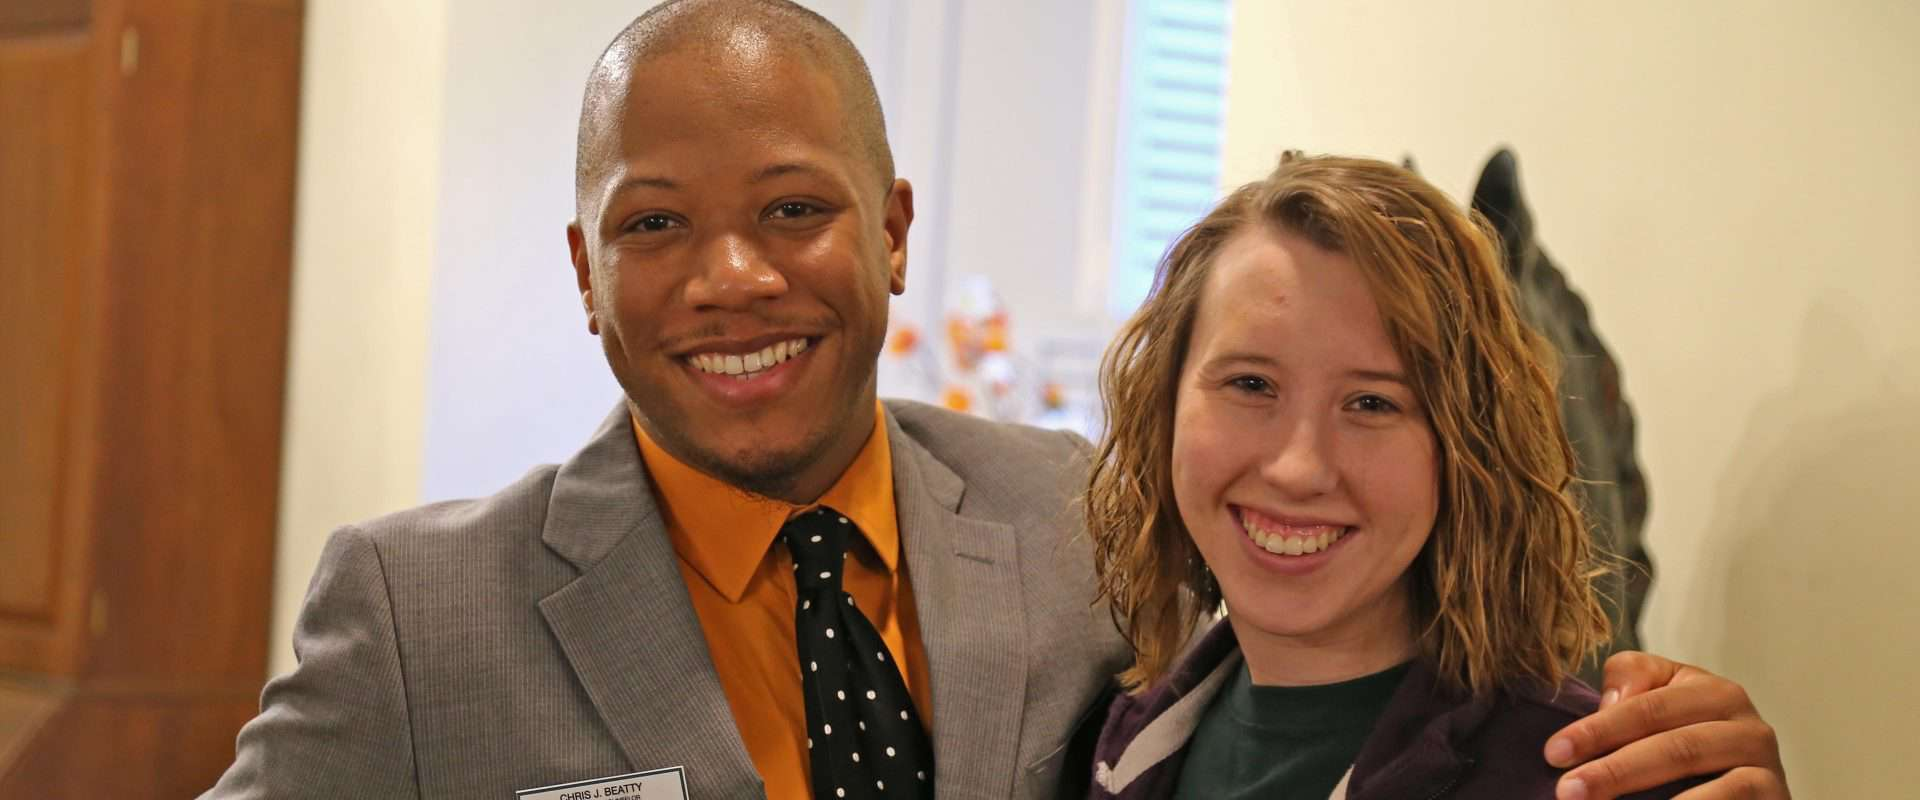 WPU counselor and student.